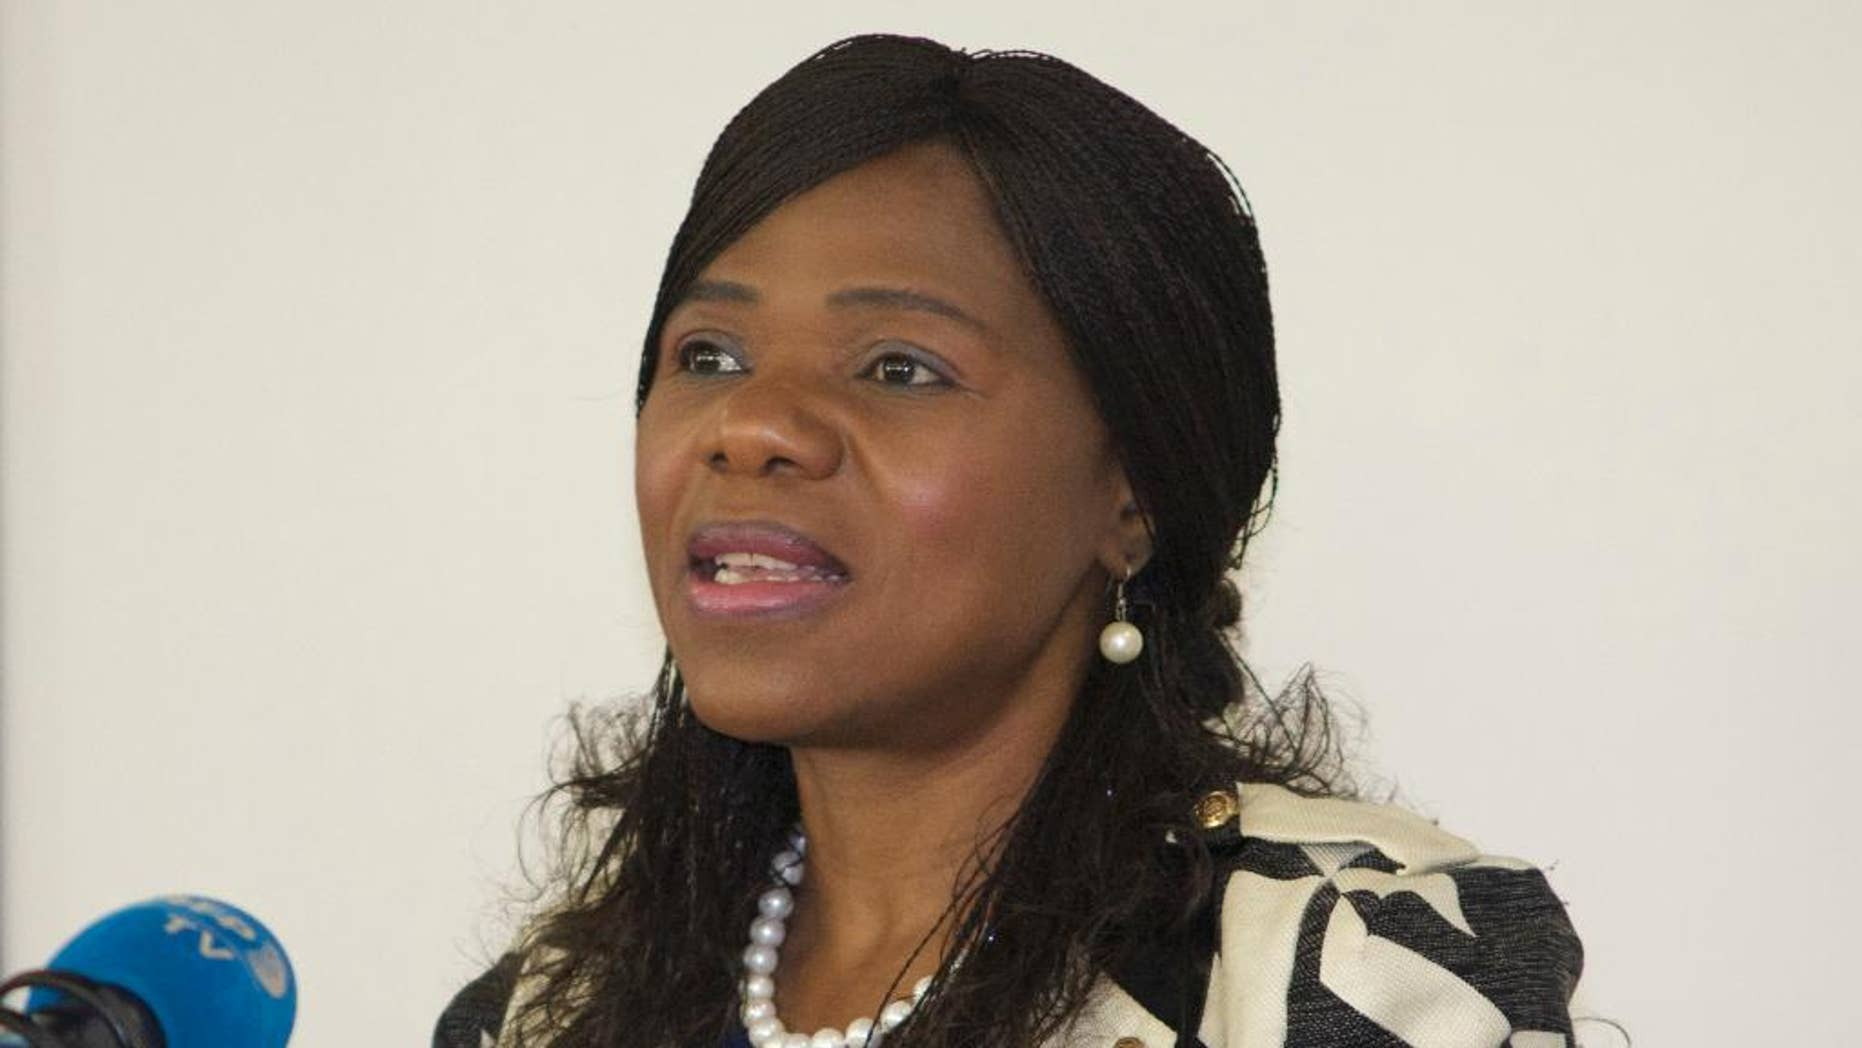 Public Protector, Thuli Madonsela, addresses journalists in Johannesburg, Tuesday, June 7, 2016. Madonsela, whose term ends in October, said that she has asked the government for more resources to investigate allegations that a wealthy Indian business family influenced President Jacob Zuma's choice of Cabinet ministers. (AP Photo/Stuart Graham)